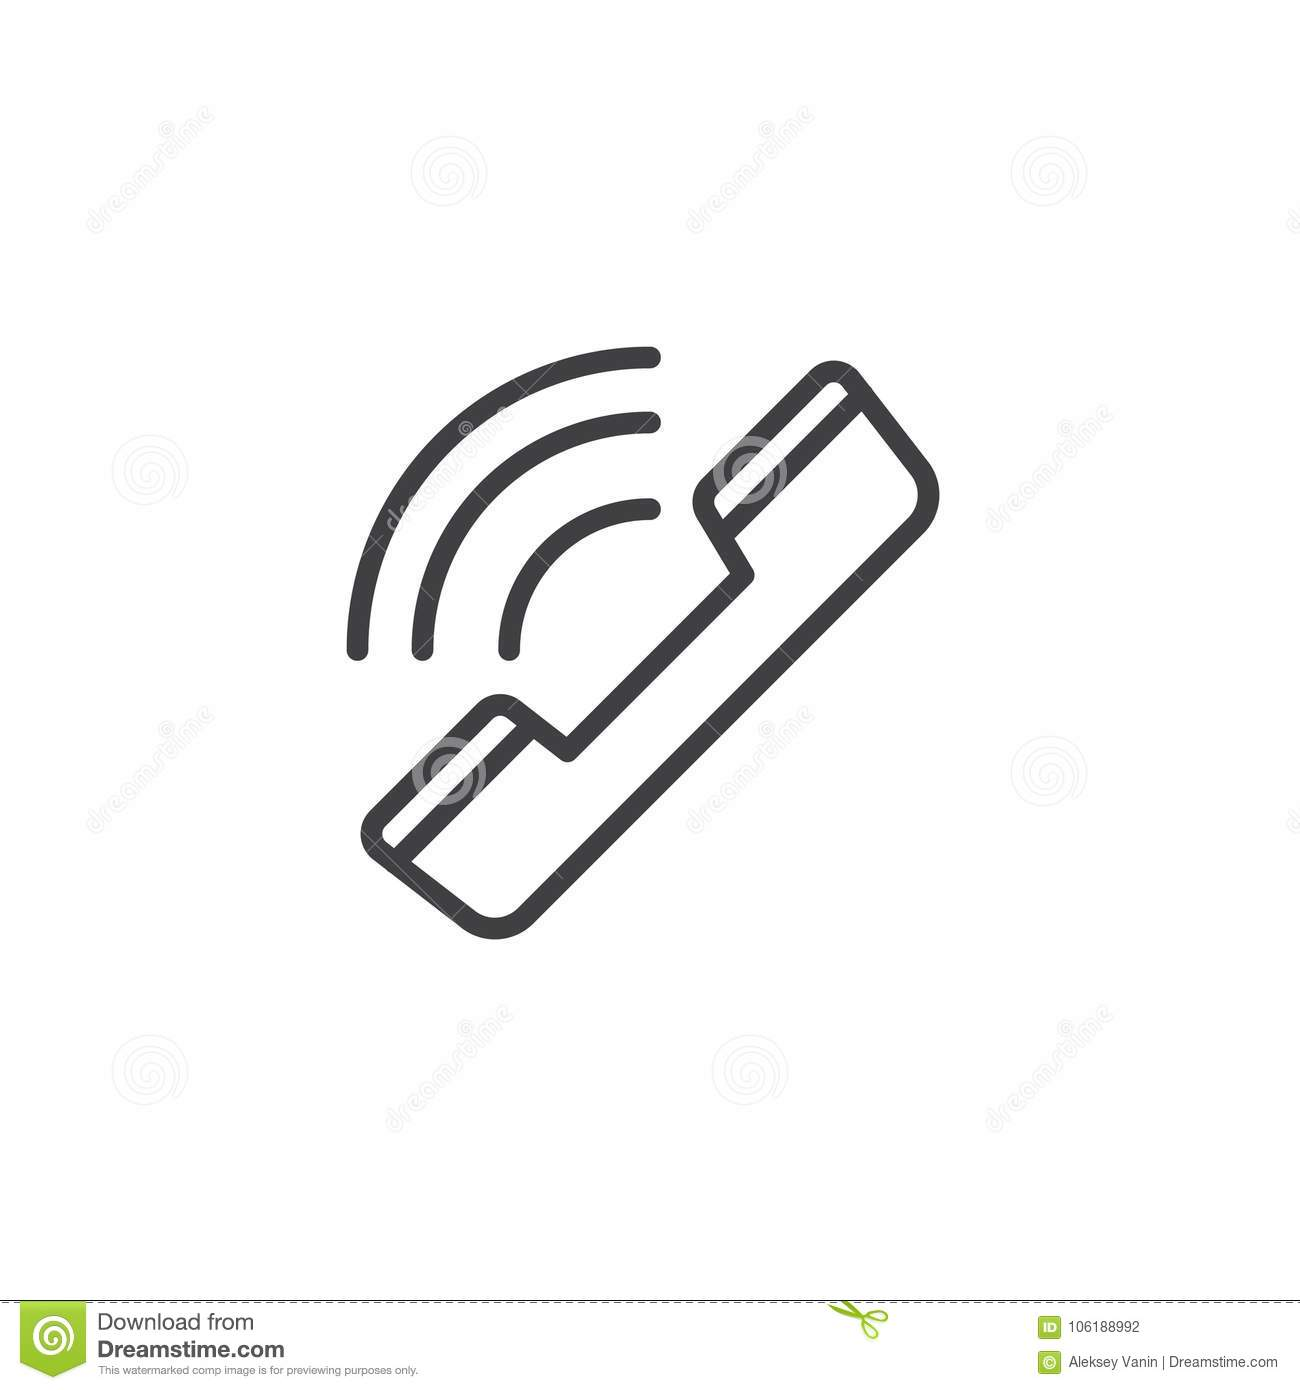 Ringing Phone Line Icon Stock Vector Illustration Of 106188992 Diagram Download